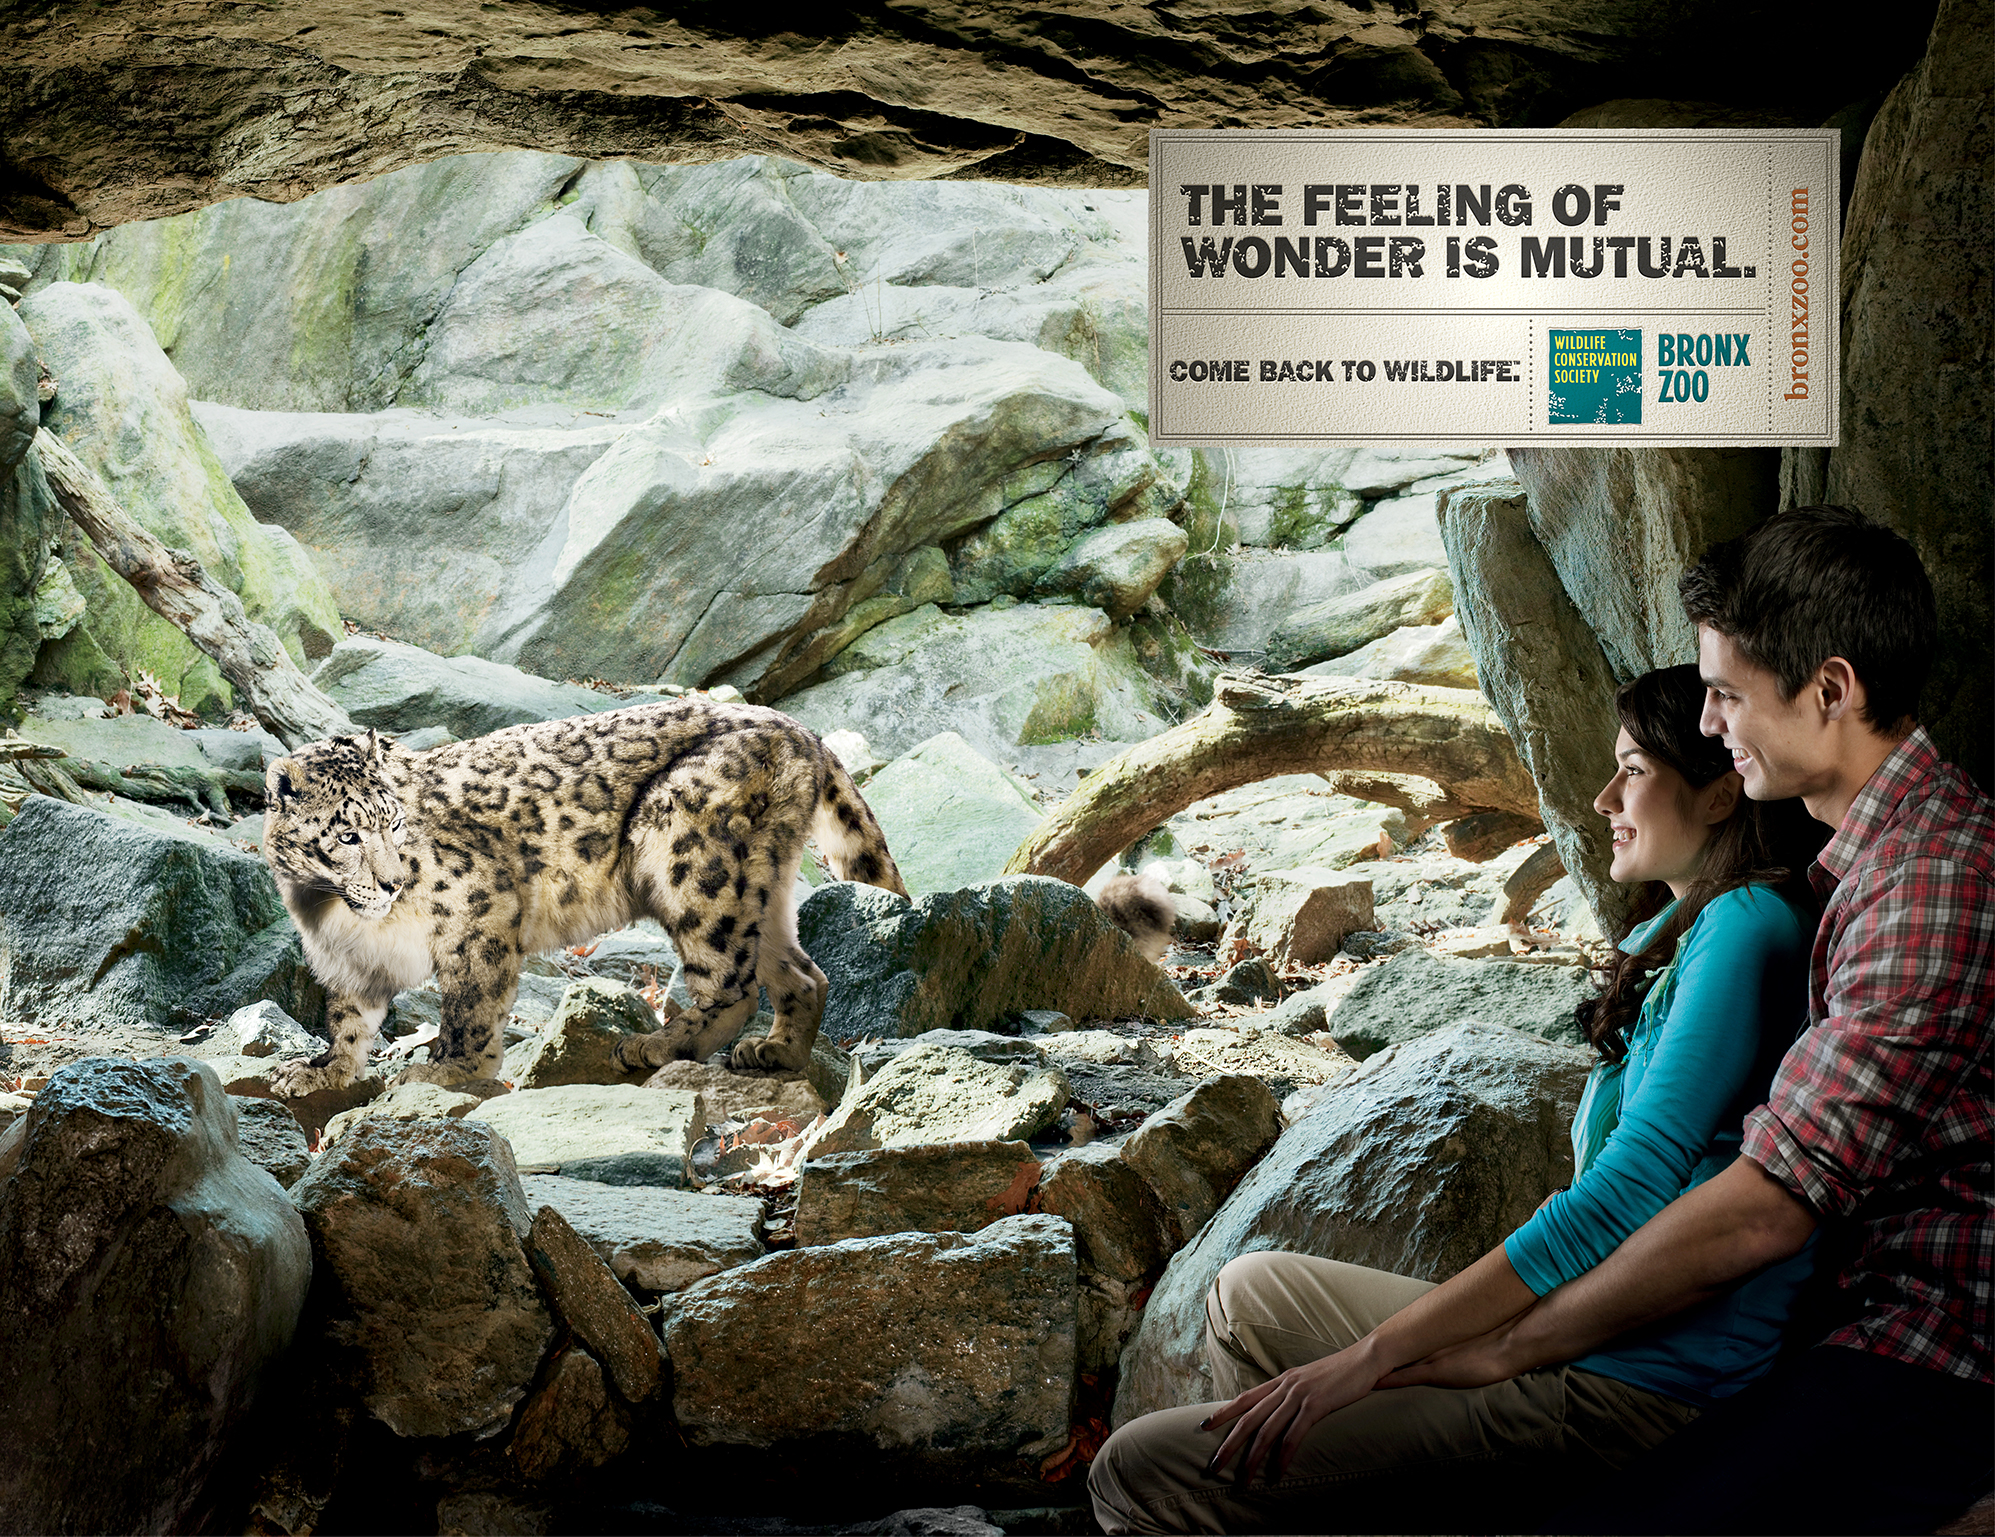 """Print ad design for Bronx Zoo""""Come back to wildlife"""" ad campaign for Bronx Zoo"""